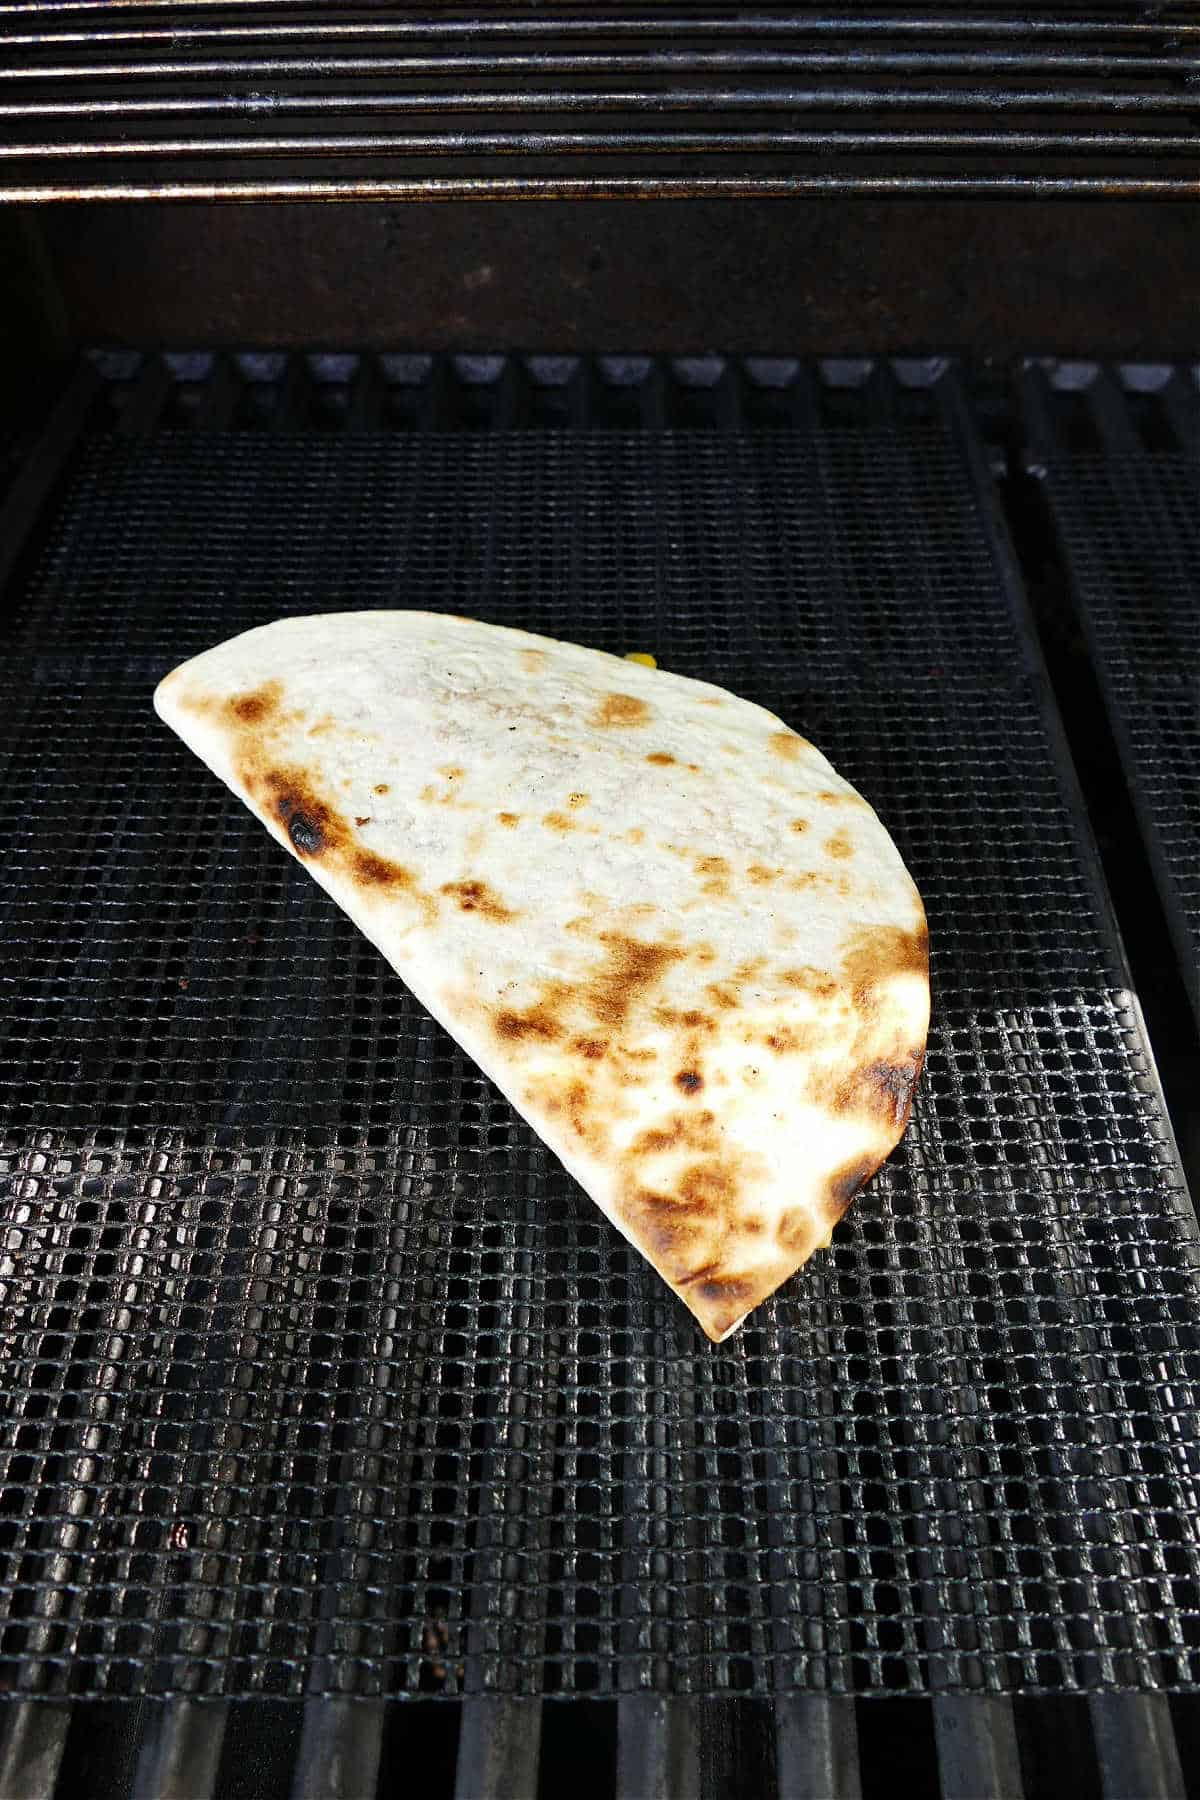 a cheese and veggie quesadilla cooking on a mesh mat over a grill